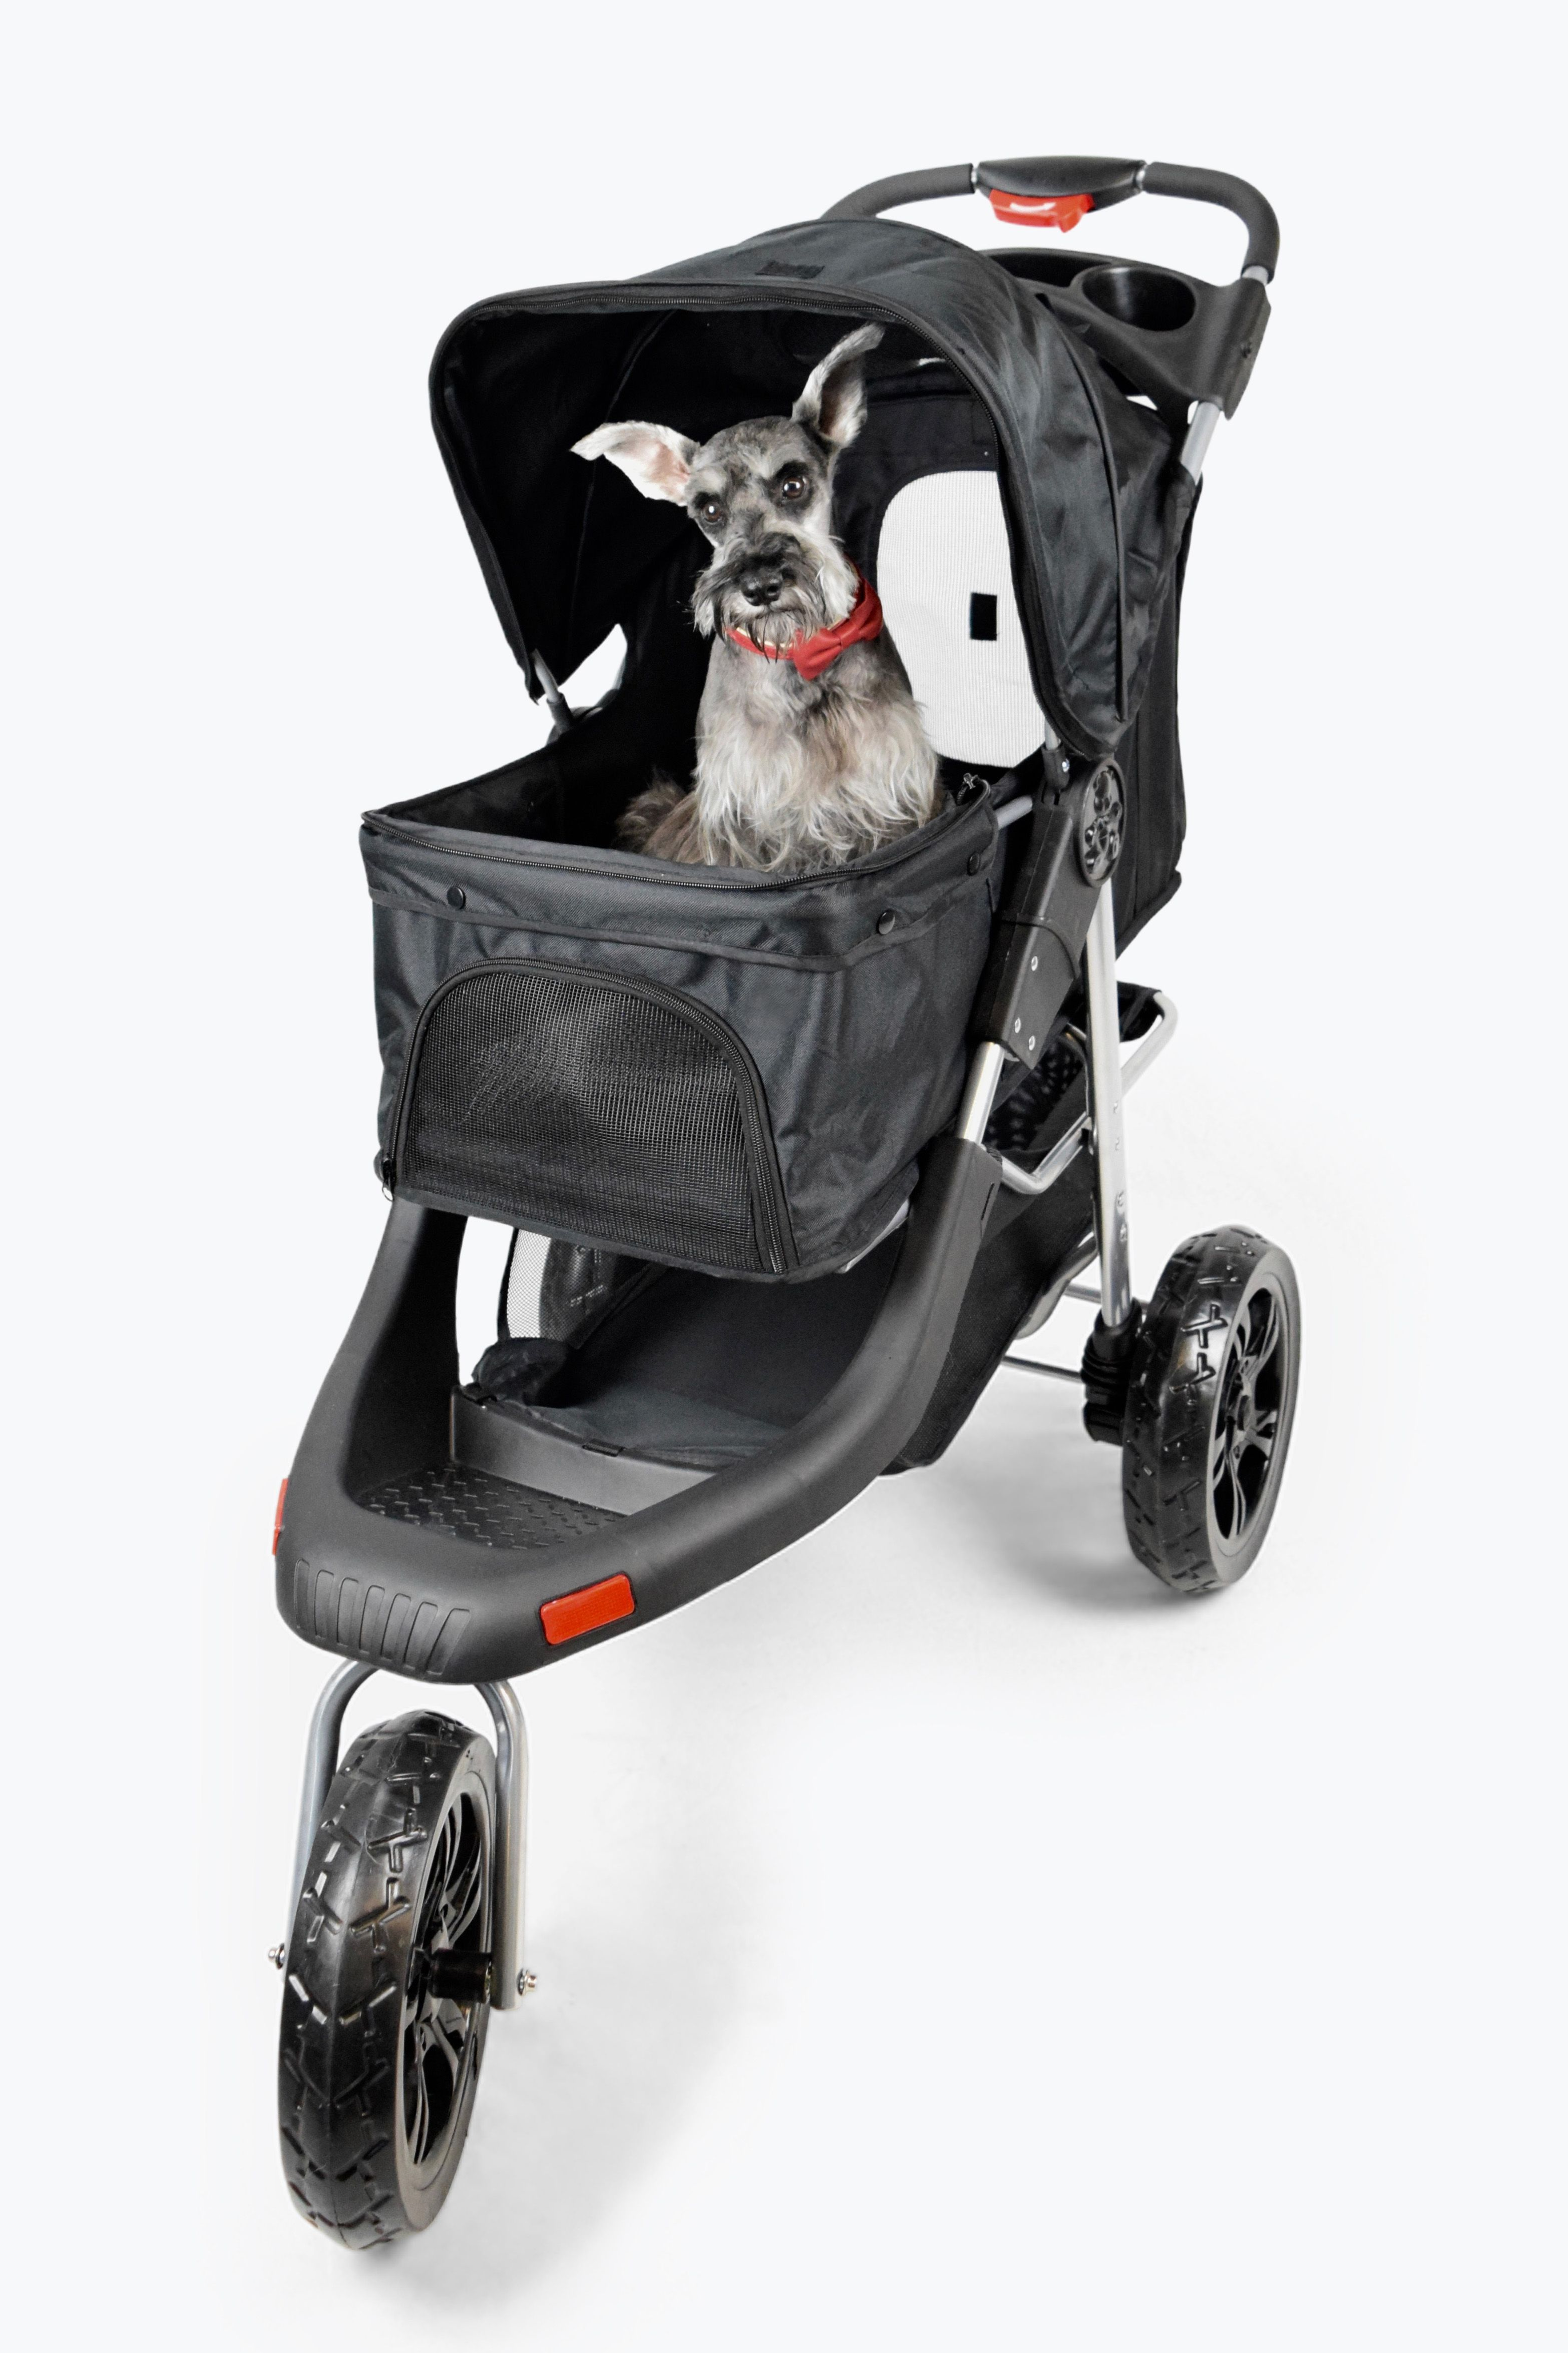 The Martha Stewart Pet Stroller is a great way to help